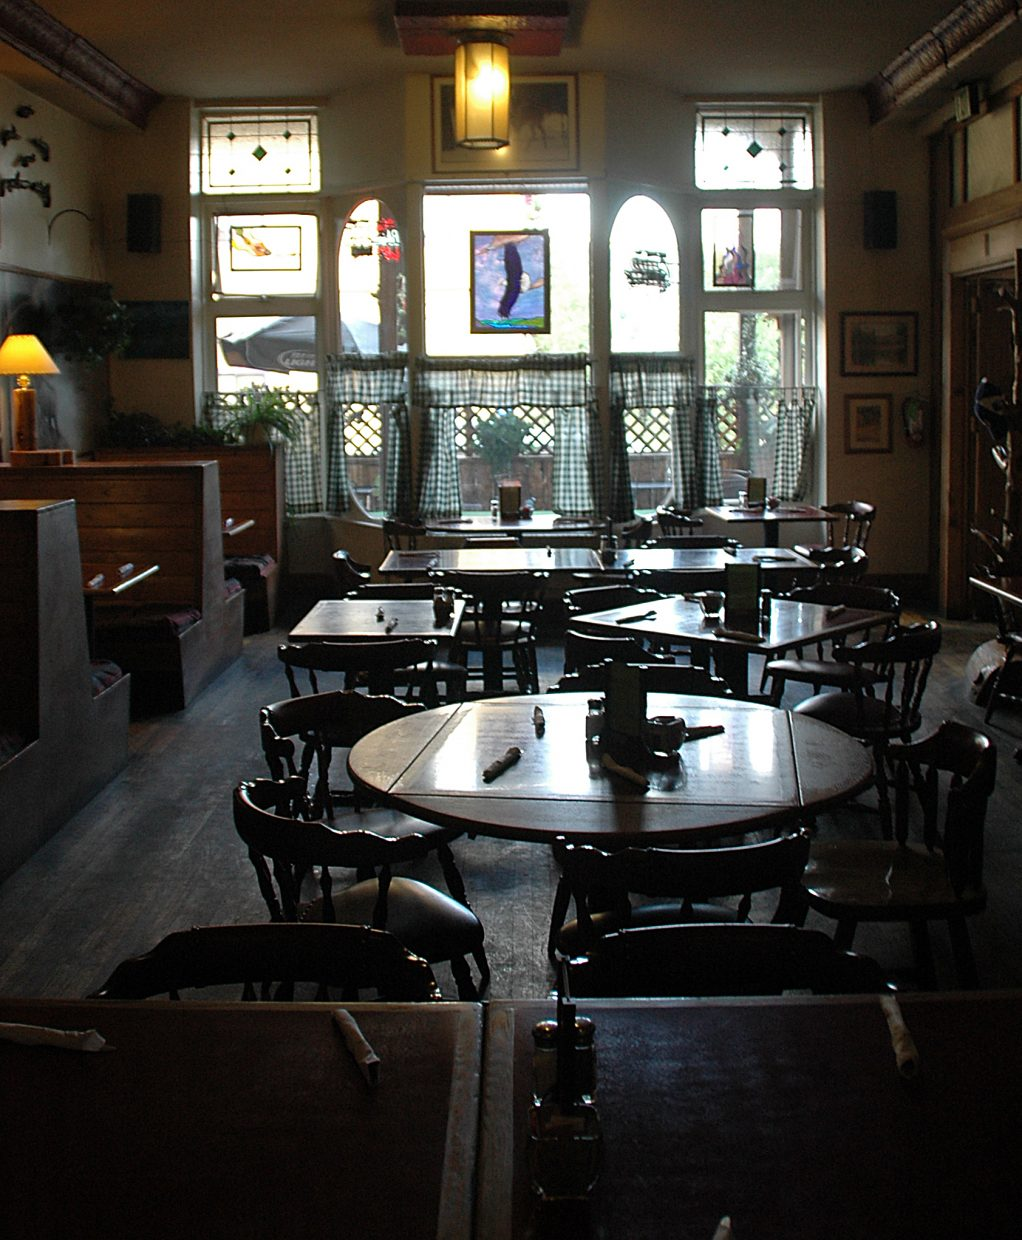 Sun comes in through the large windows at the front of Black Mountain Tavern in Oak Creek on a slow afternoon in July. Doug Diamond sold the restaurant on Aug. 1, citing the poor economy.